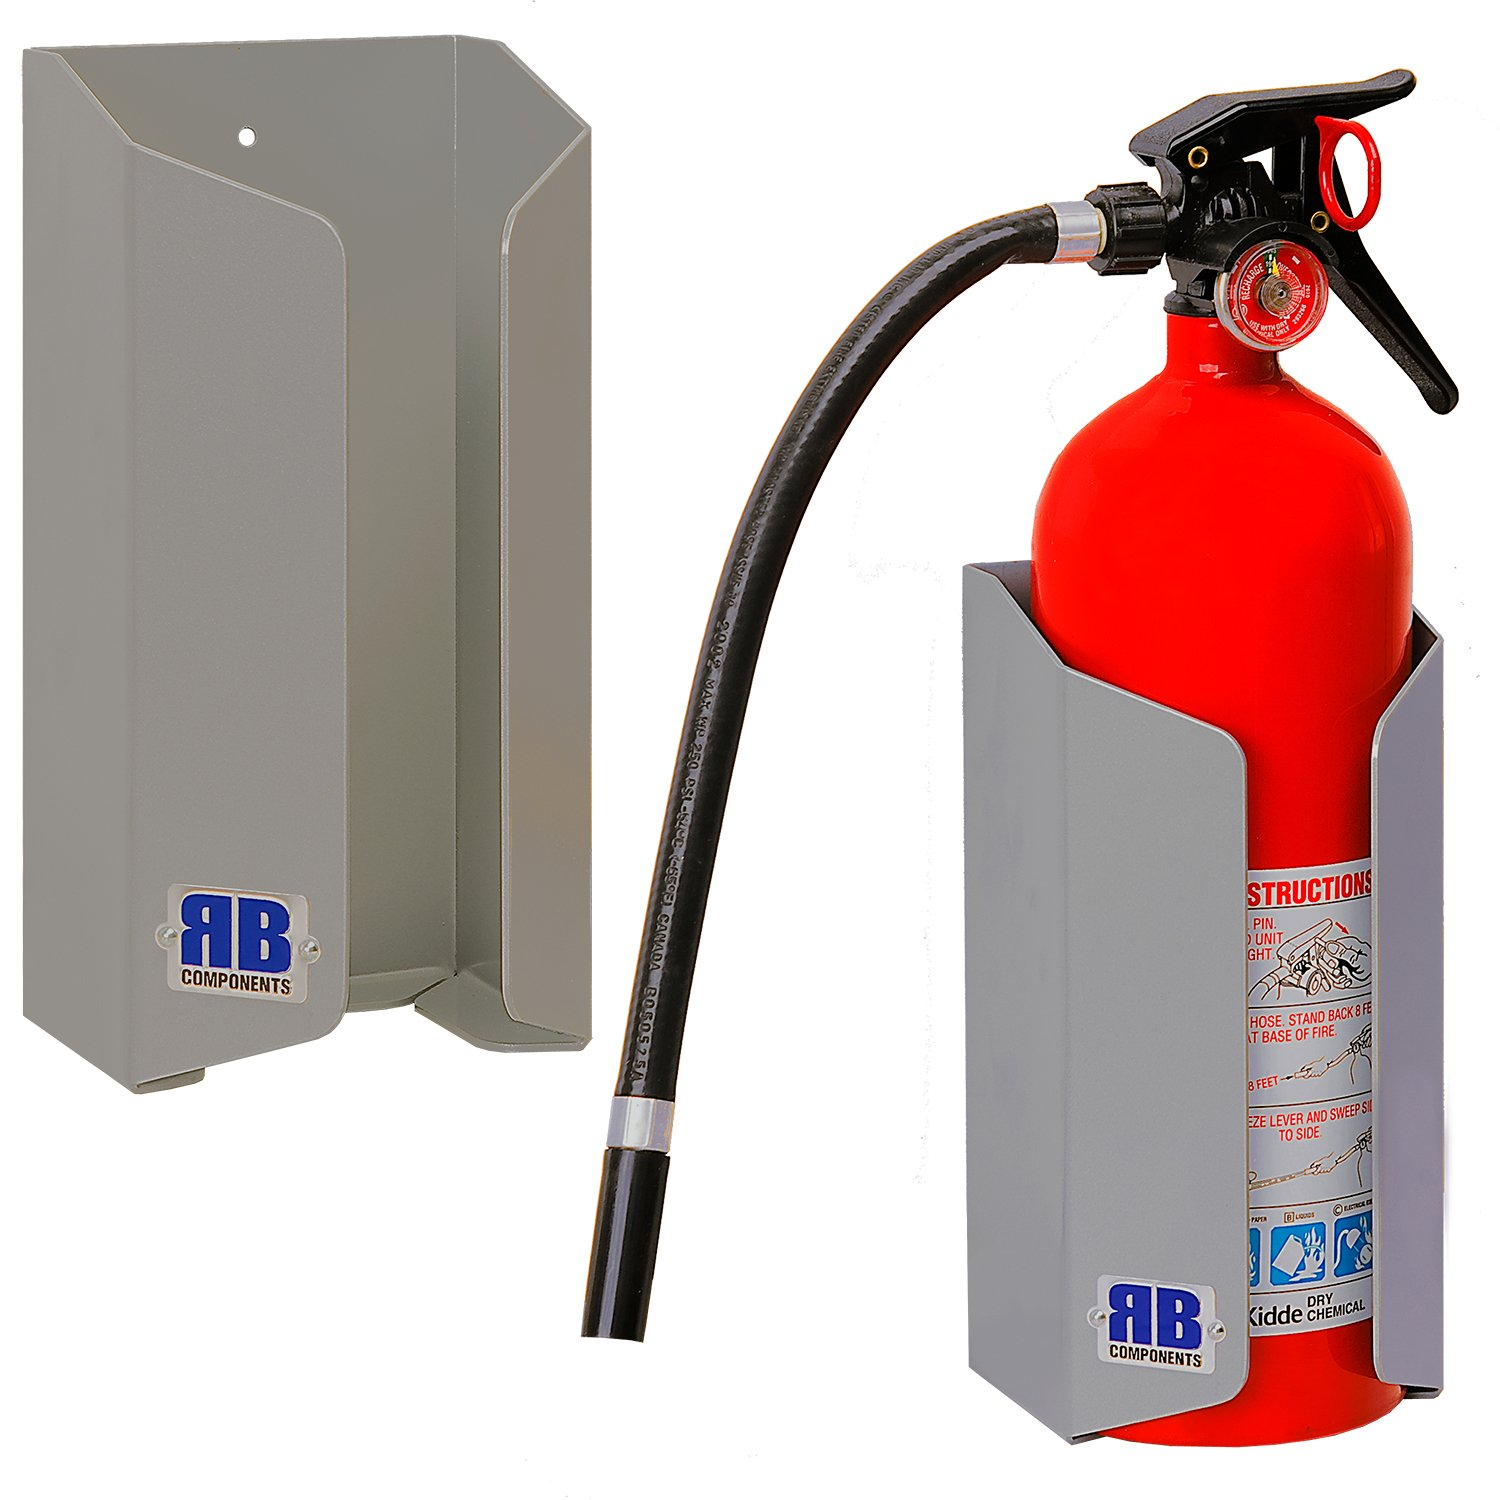 RB Components 2537 Fire Extinguisher Mount, Silver by RB Components